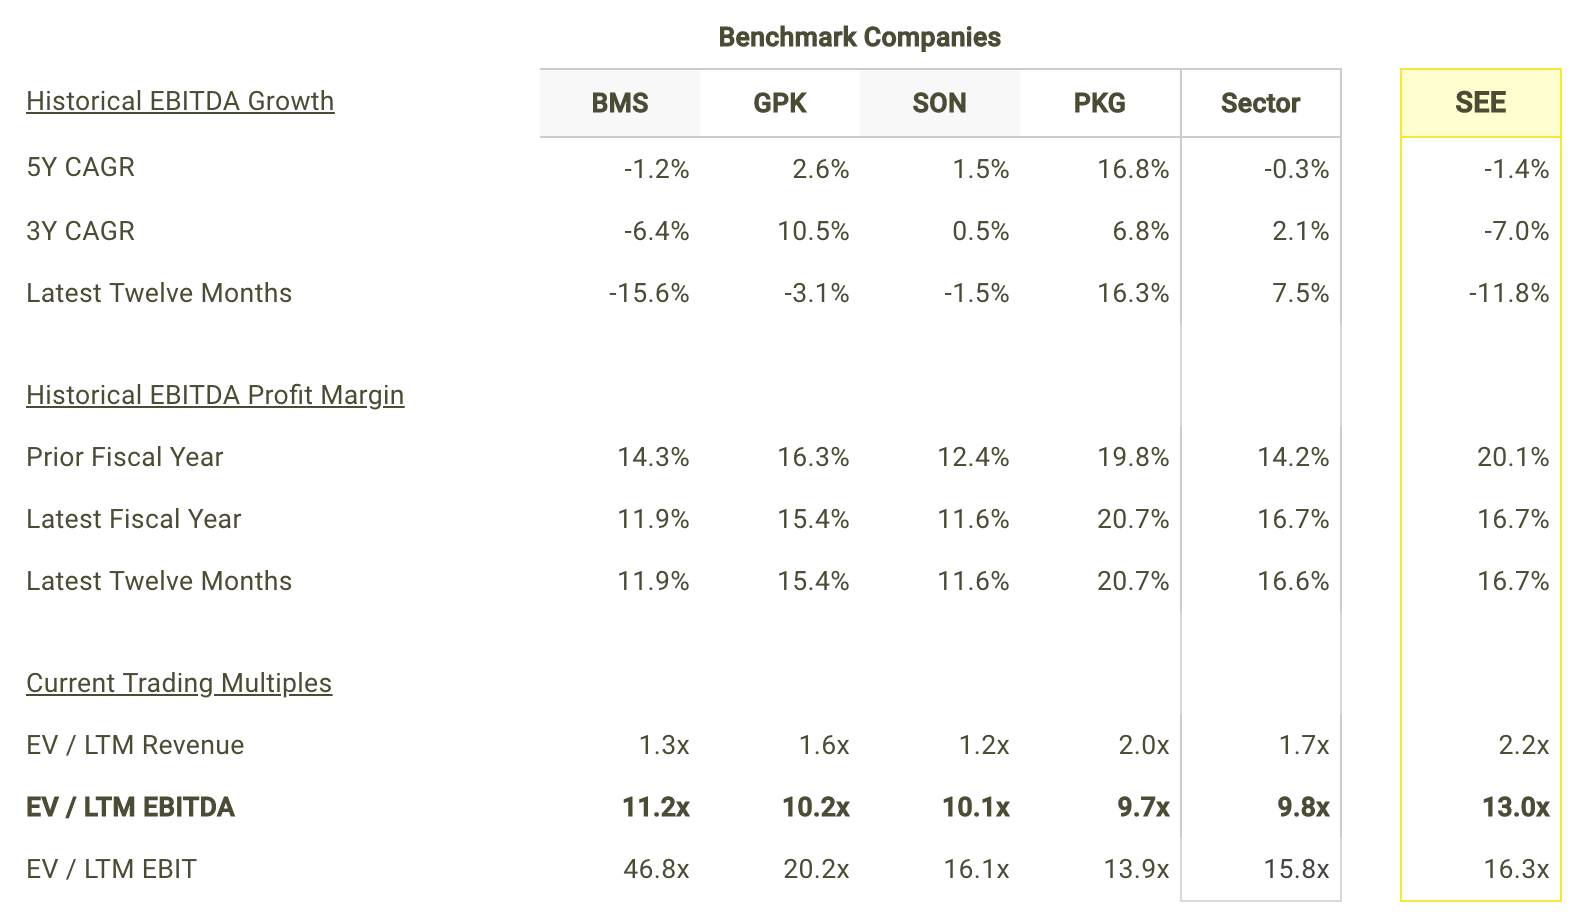 SEE EBITDA Growth and Margins vs Peers Table